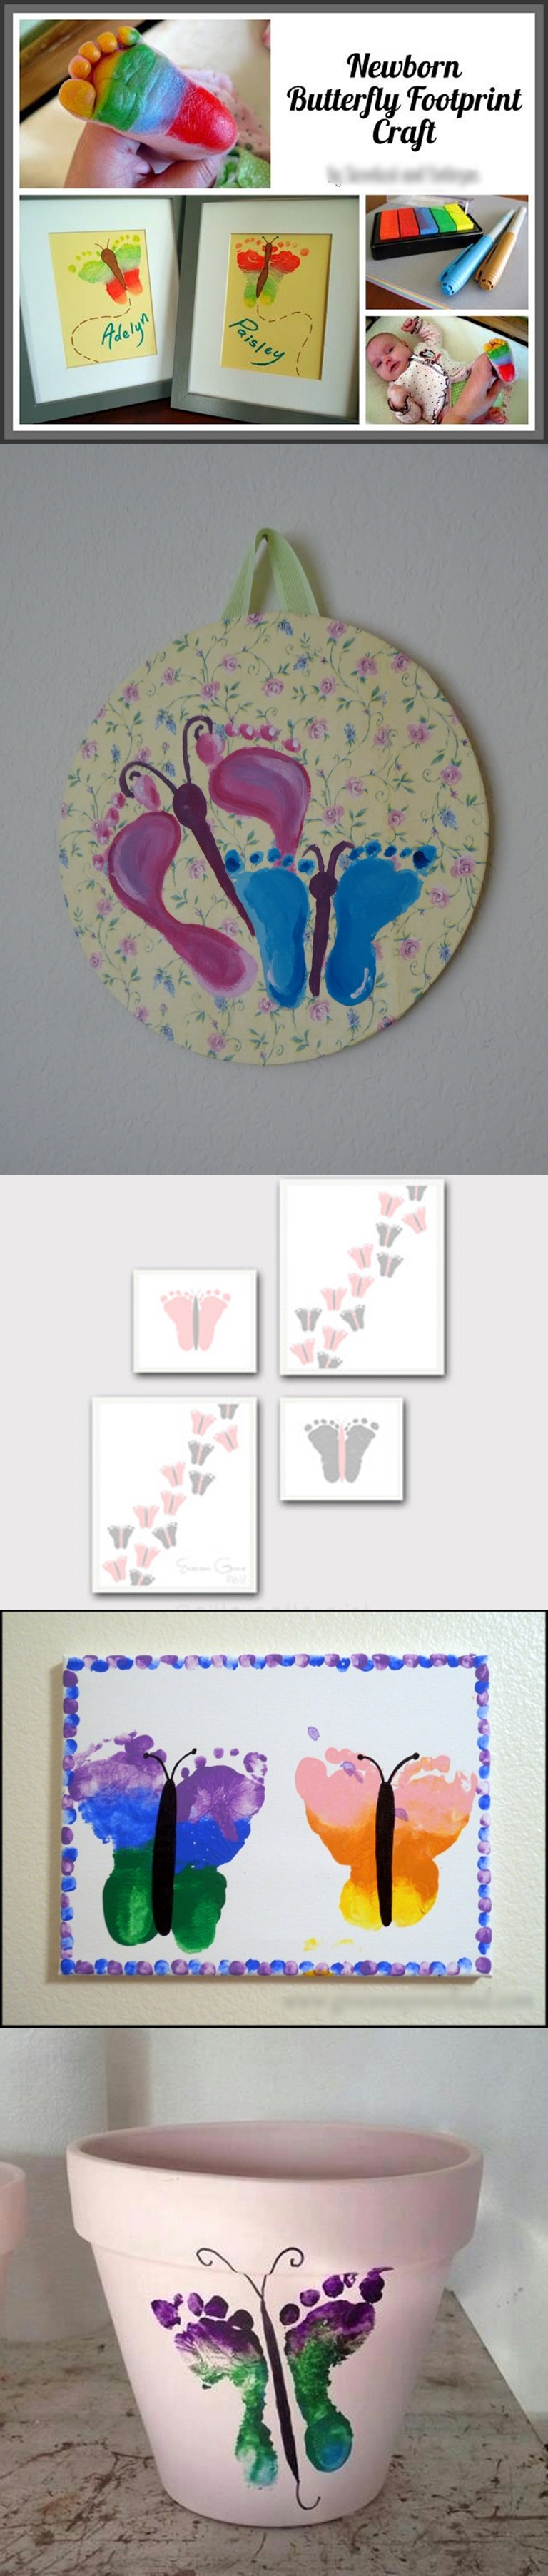 Butterfly Footprint Artwork M Wonderful DIY Butterfly Footprint Artwork